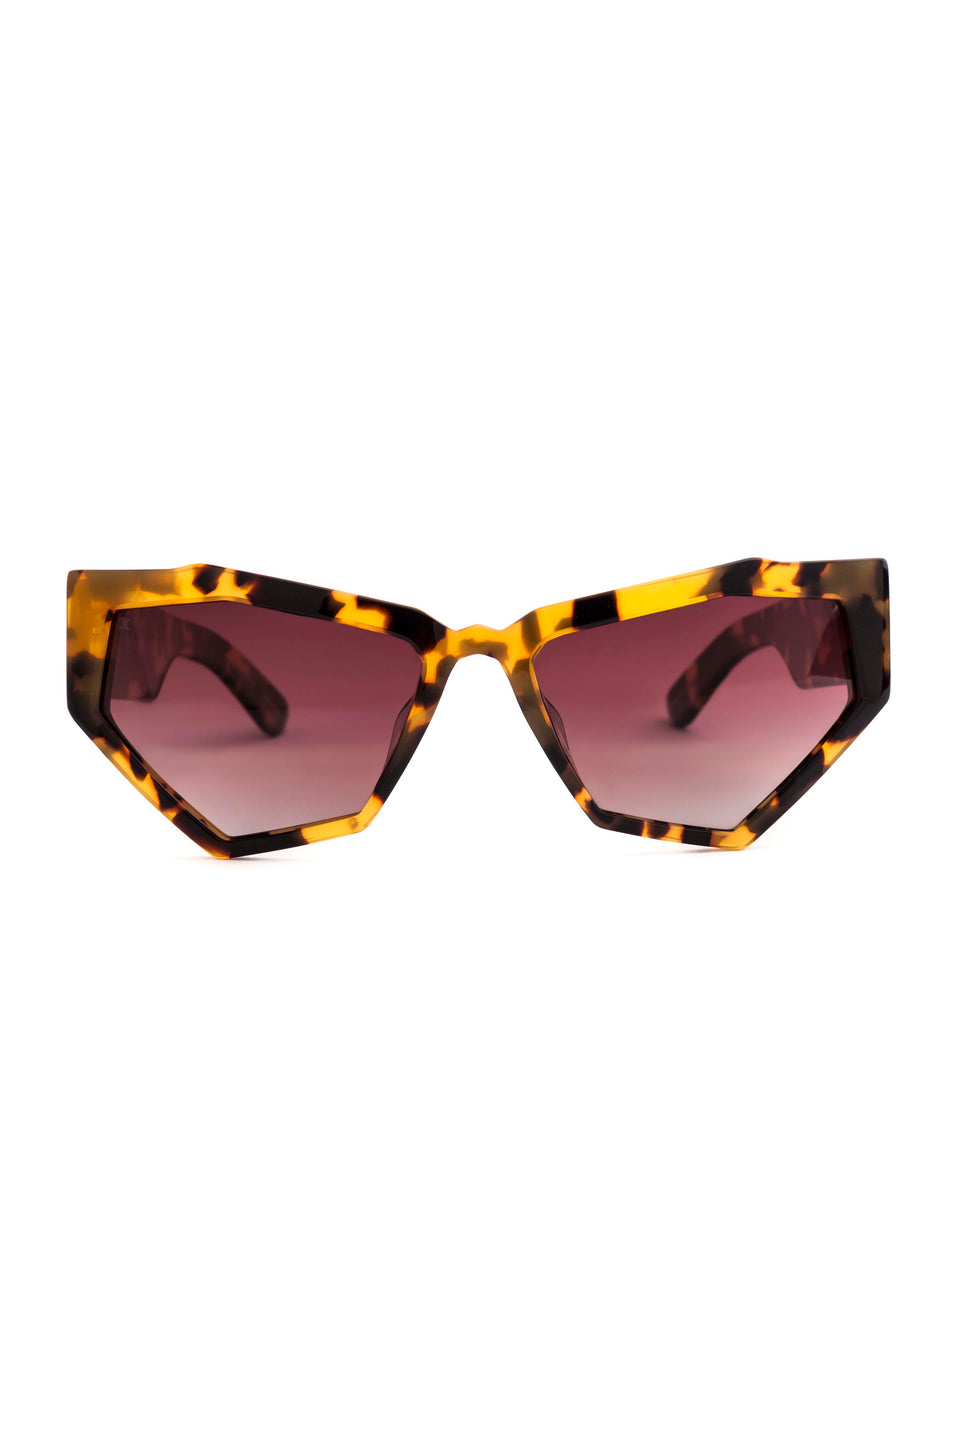 FOR YOUR EYES ONLY - BUDDHA GOLD TORT